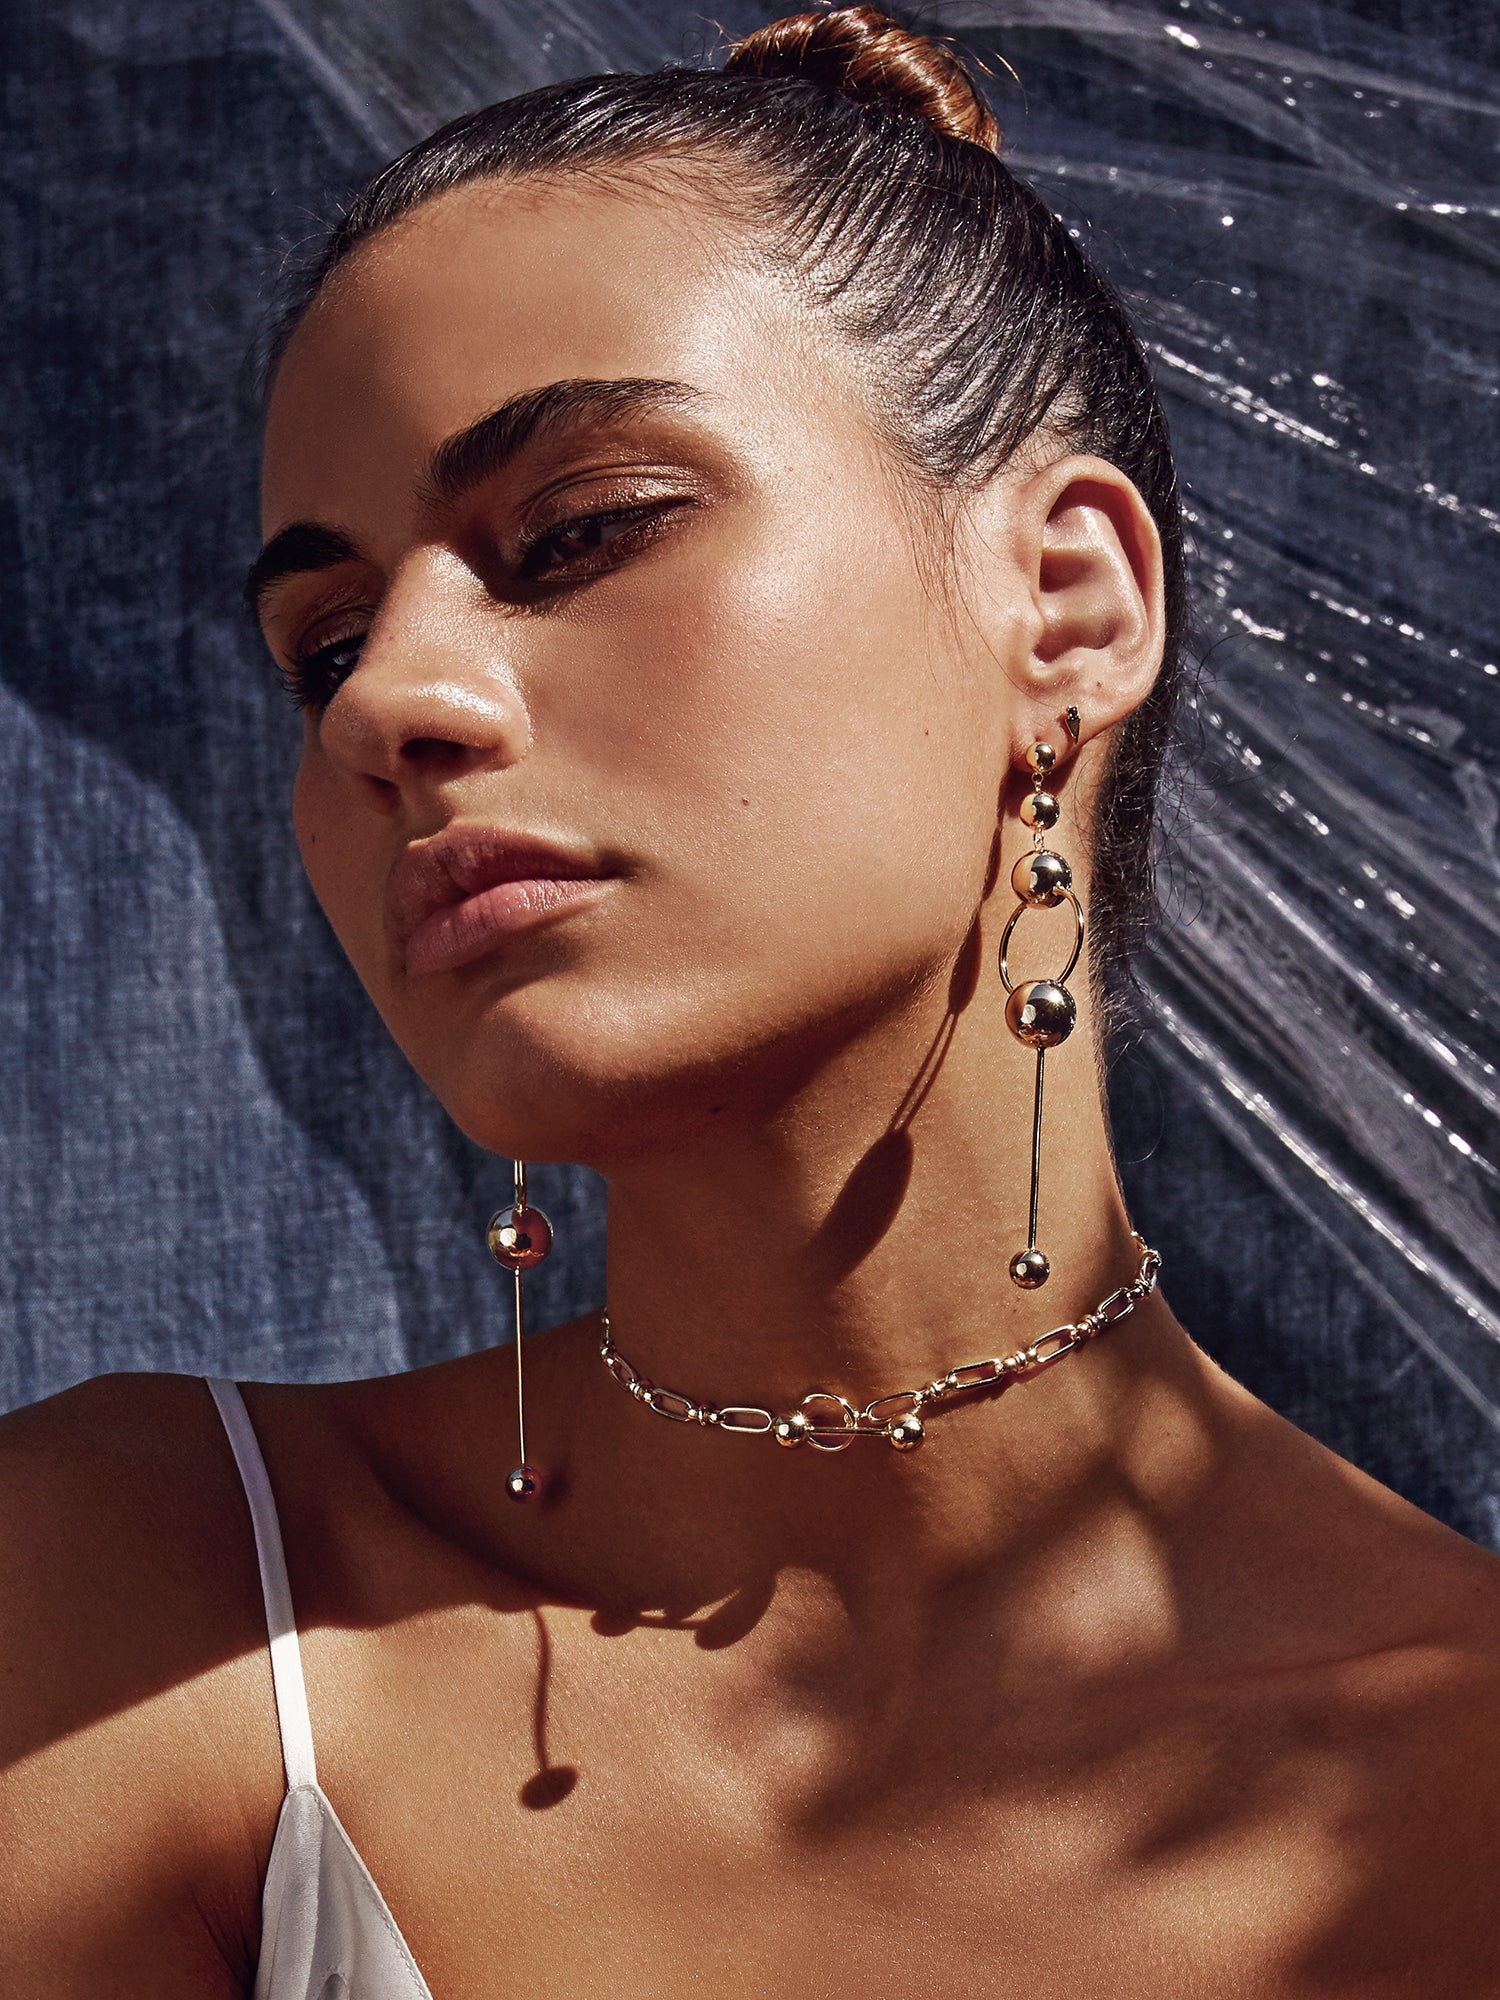 trendy, statement earrings, gold, style, influencer, blogger, Selena gomez, hoops, ear game, jewelry, accessories, Saint Lola, stud earrings, chocker, gold necklace